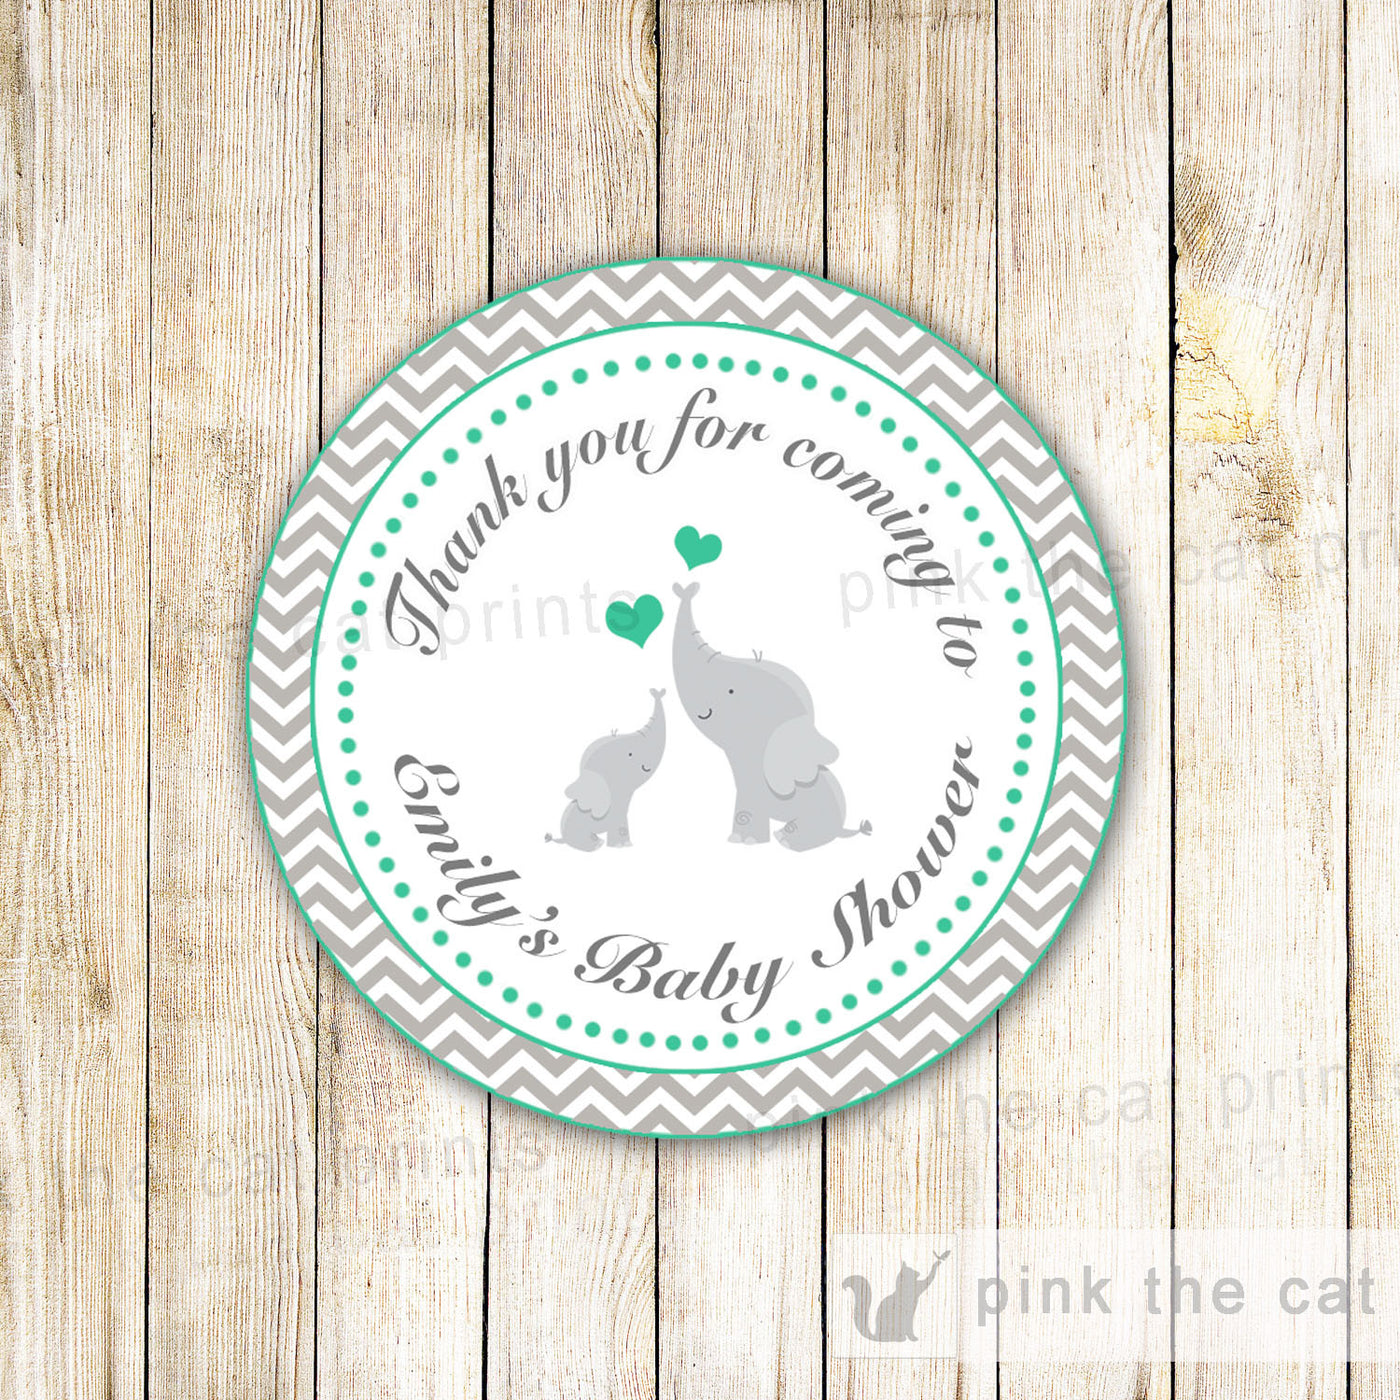 Elephant Sticker Gift Favor Tag Thank You Label Baby Shower Birthday G Pink The Cat